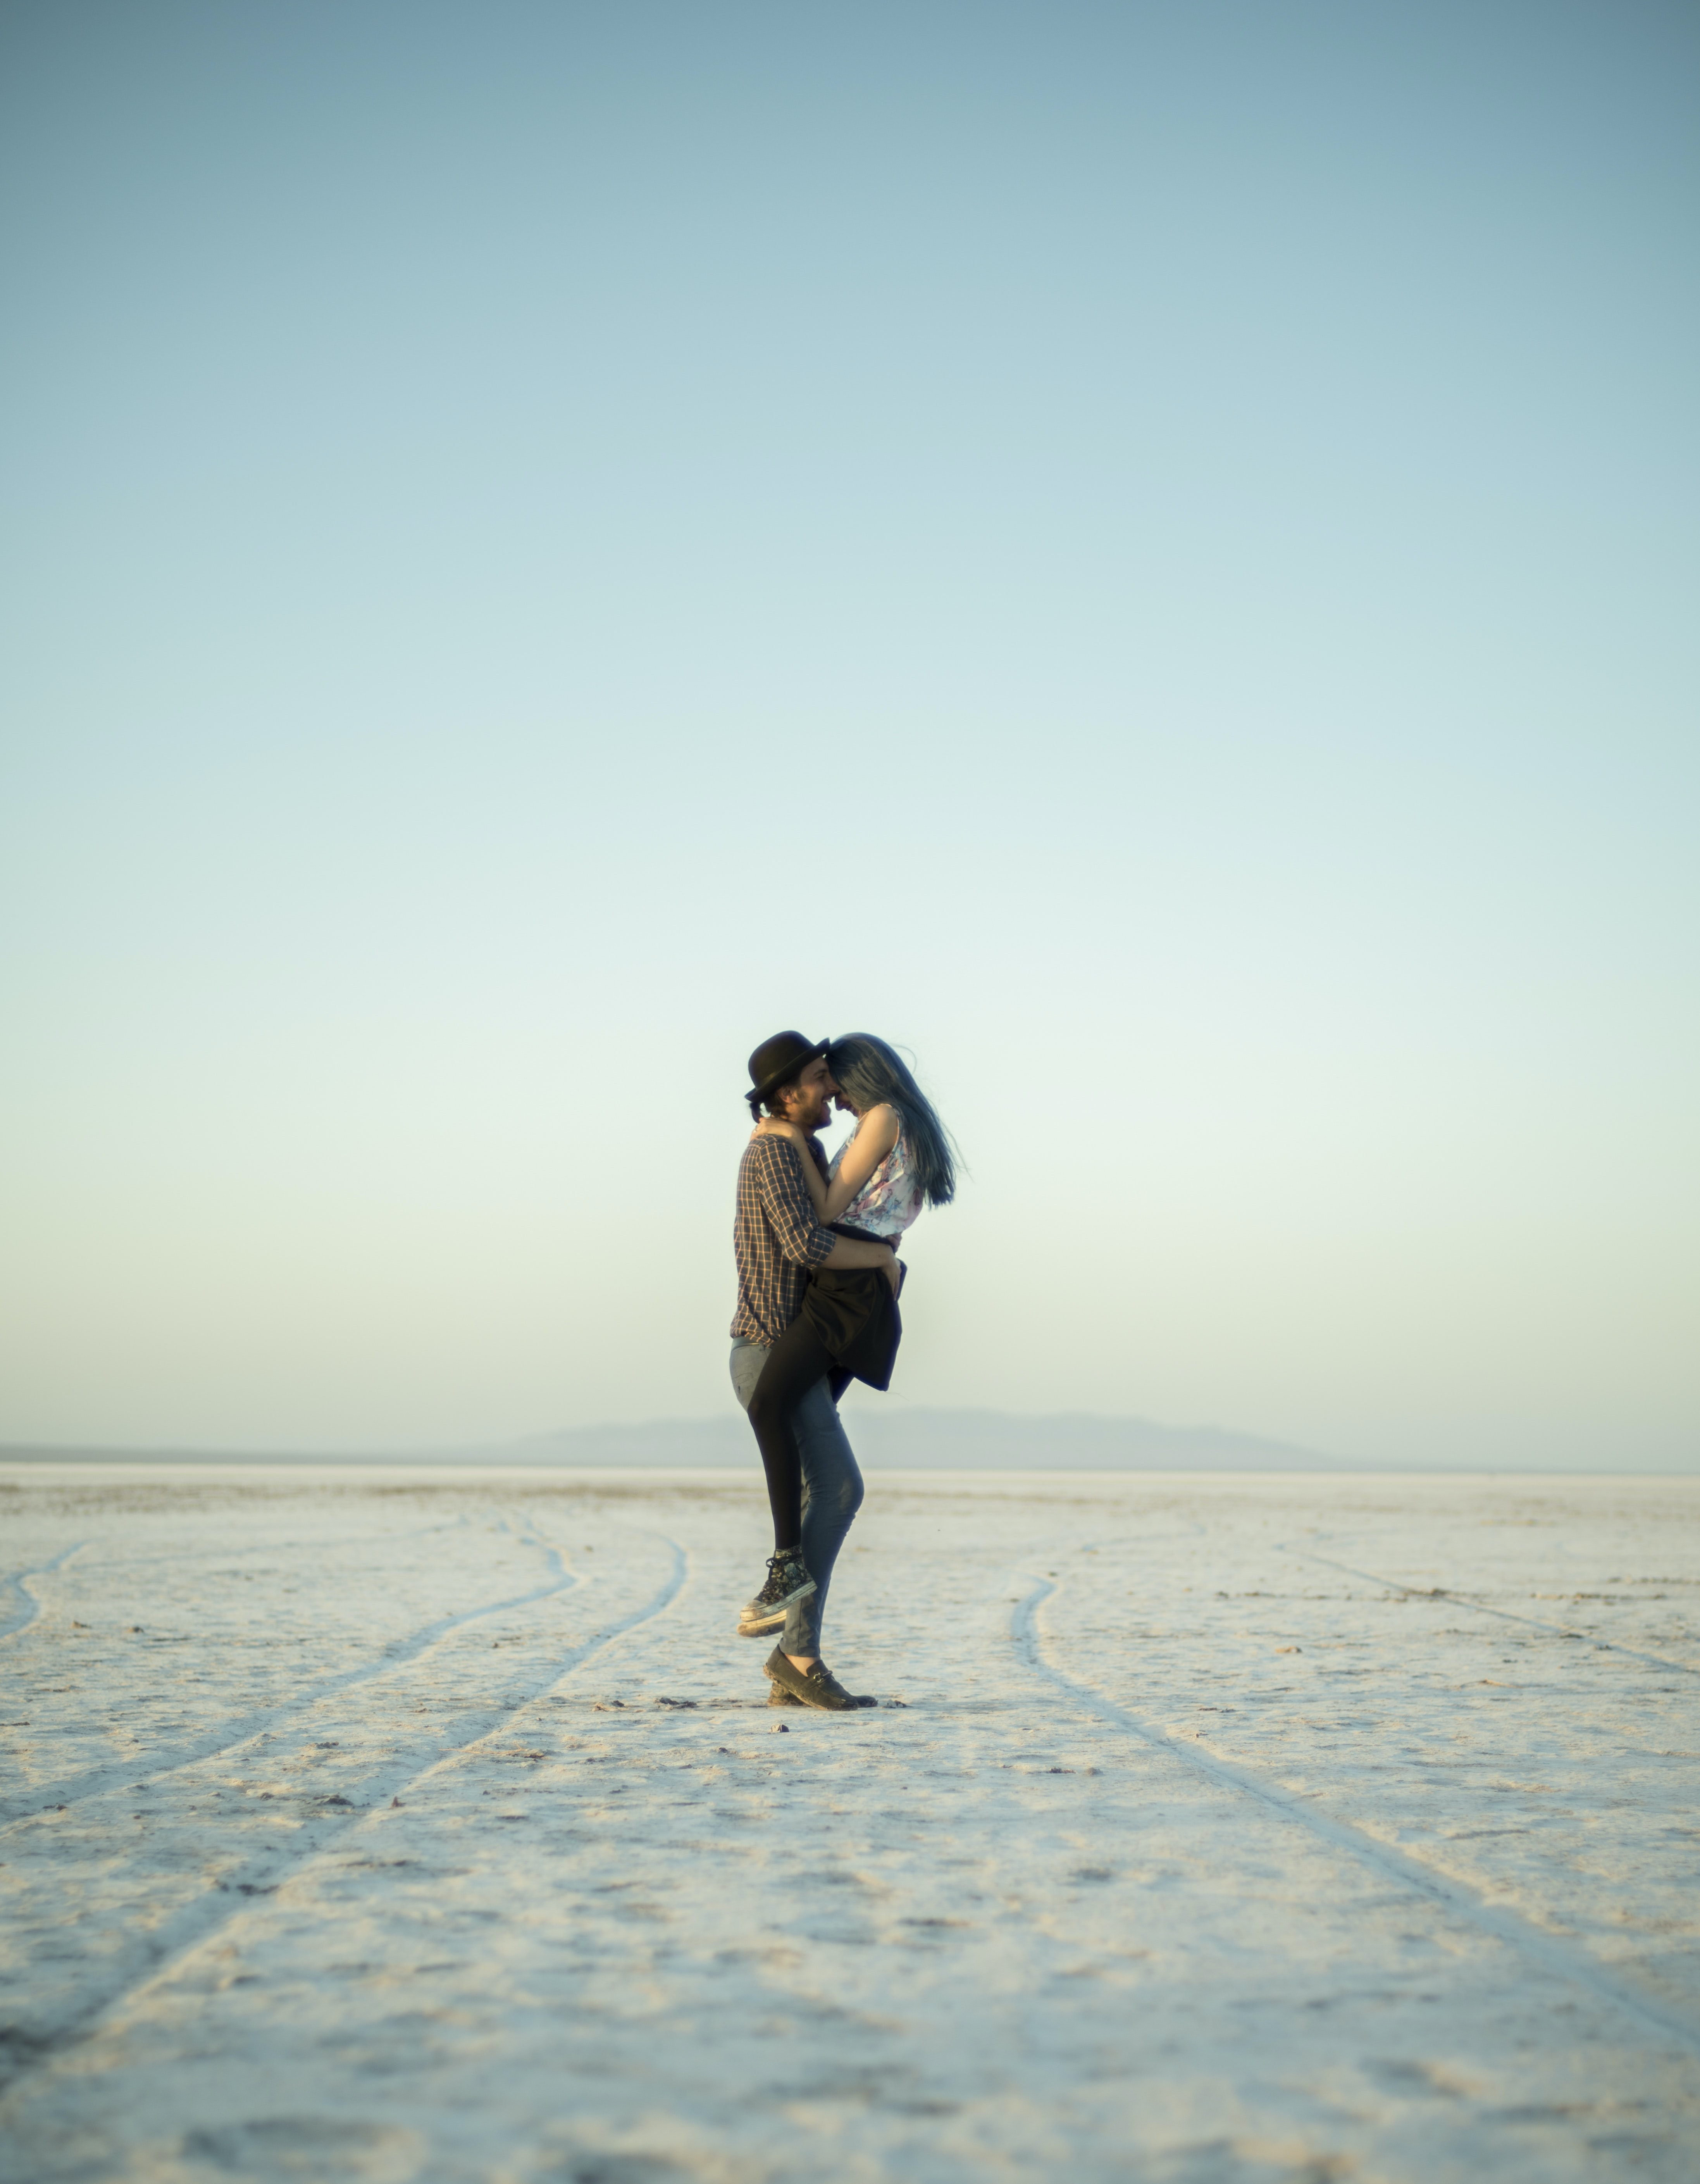 man carrying woman while standing on snow road